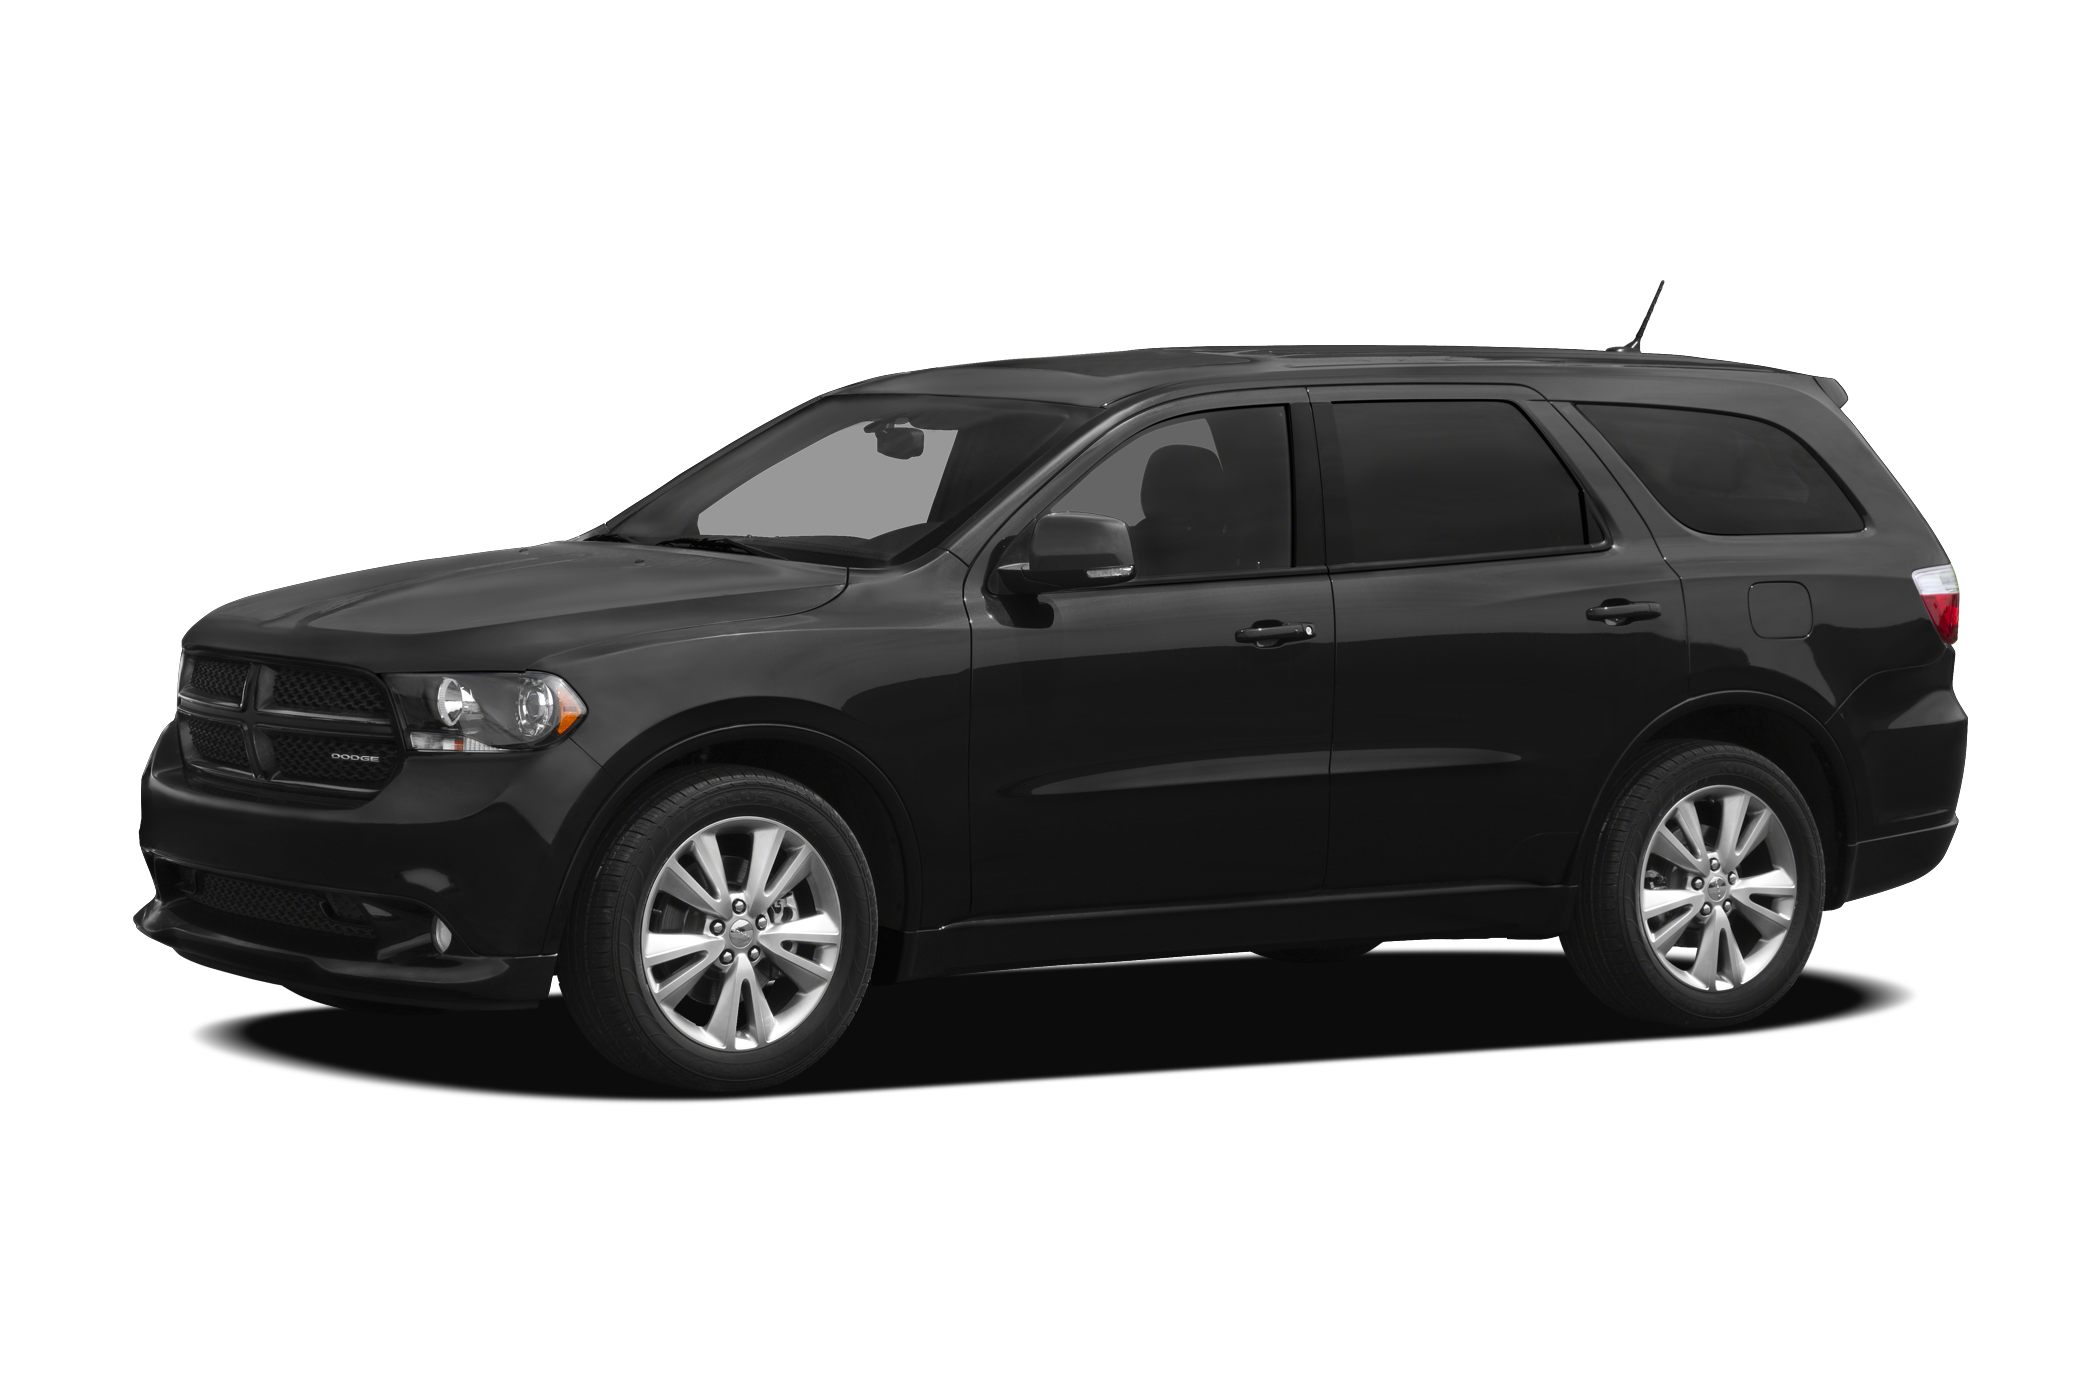 2012 Dodge Durango R/T SUV for sale in Laurel for $27,988 with 43,814 miles